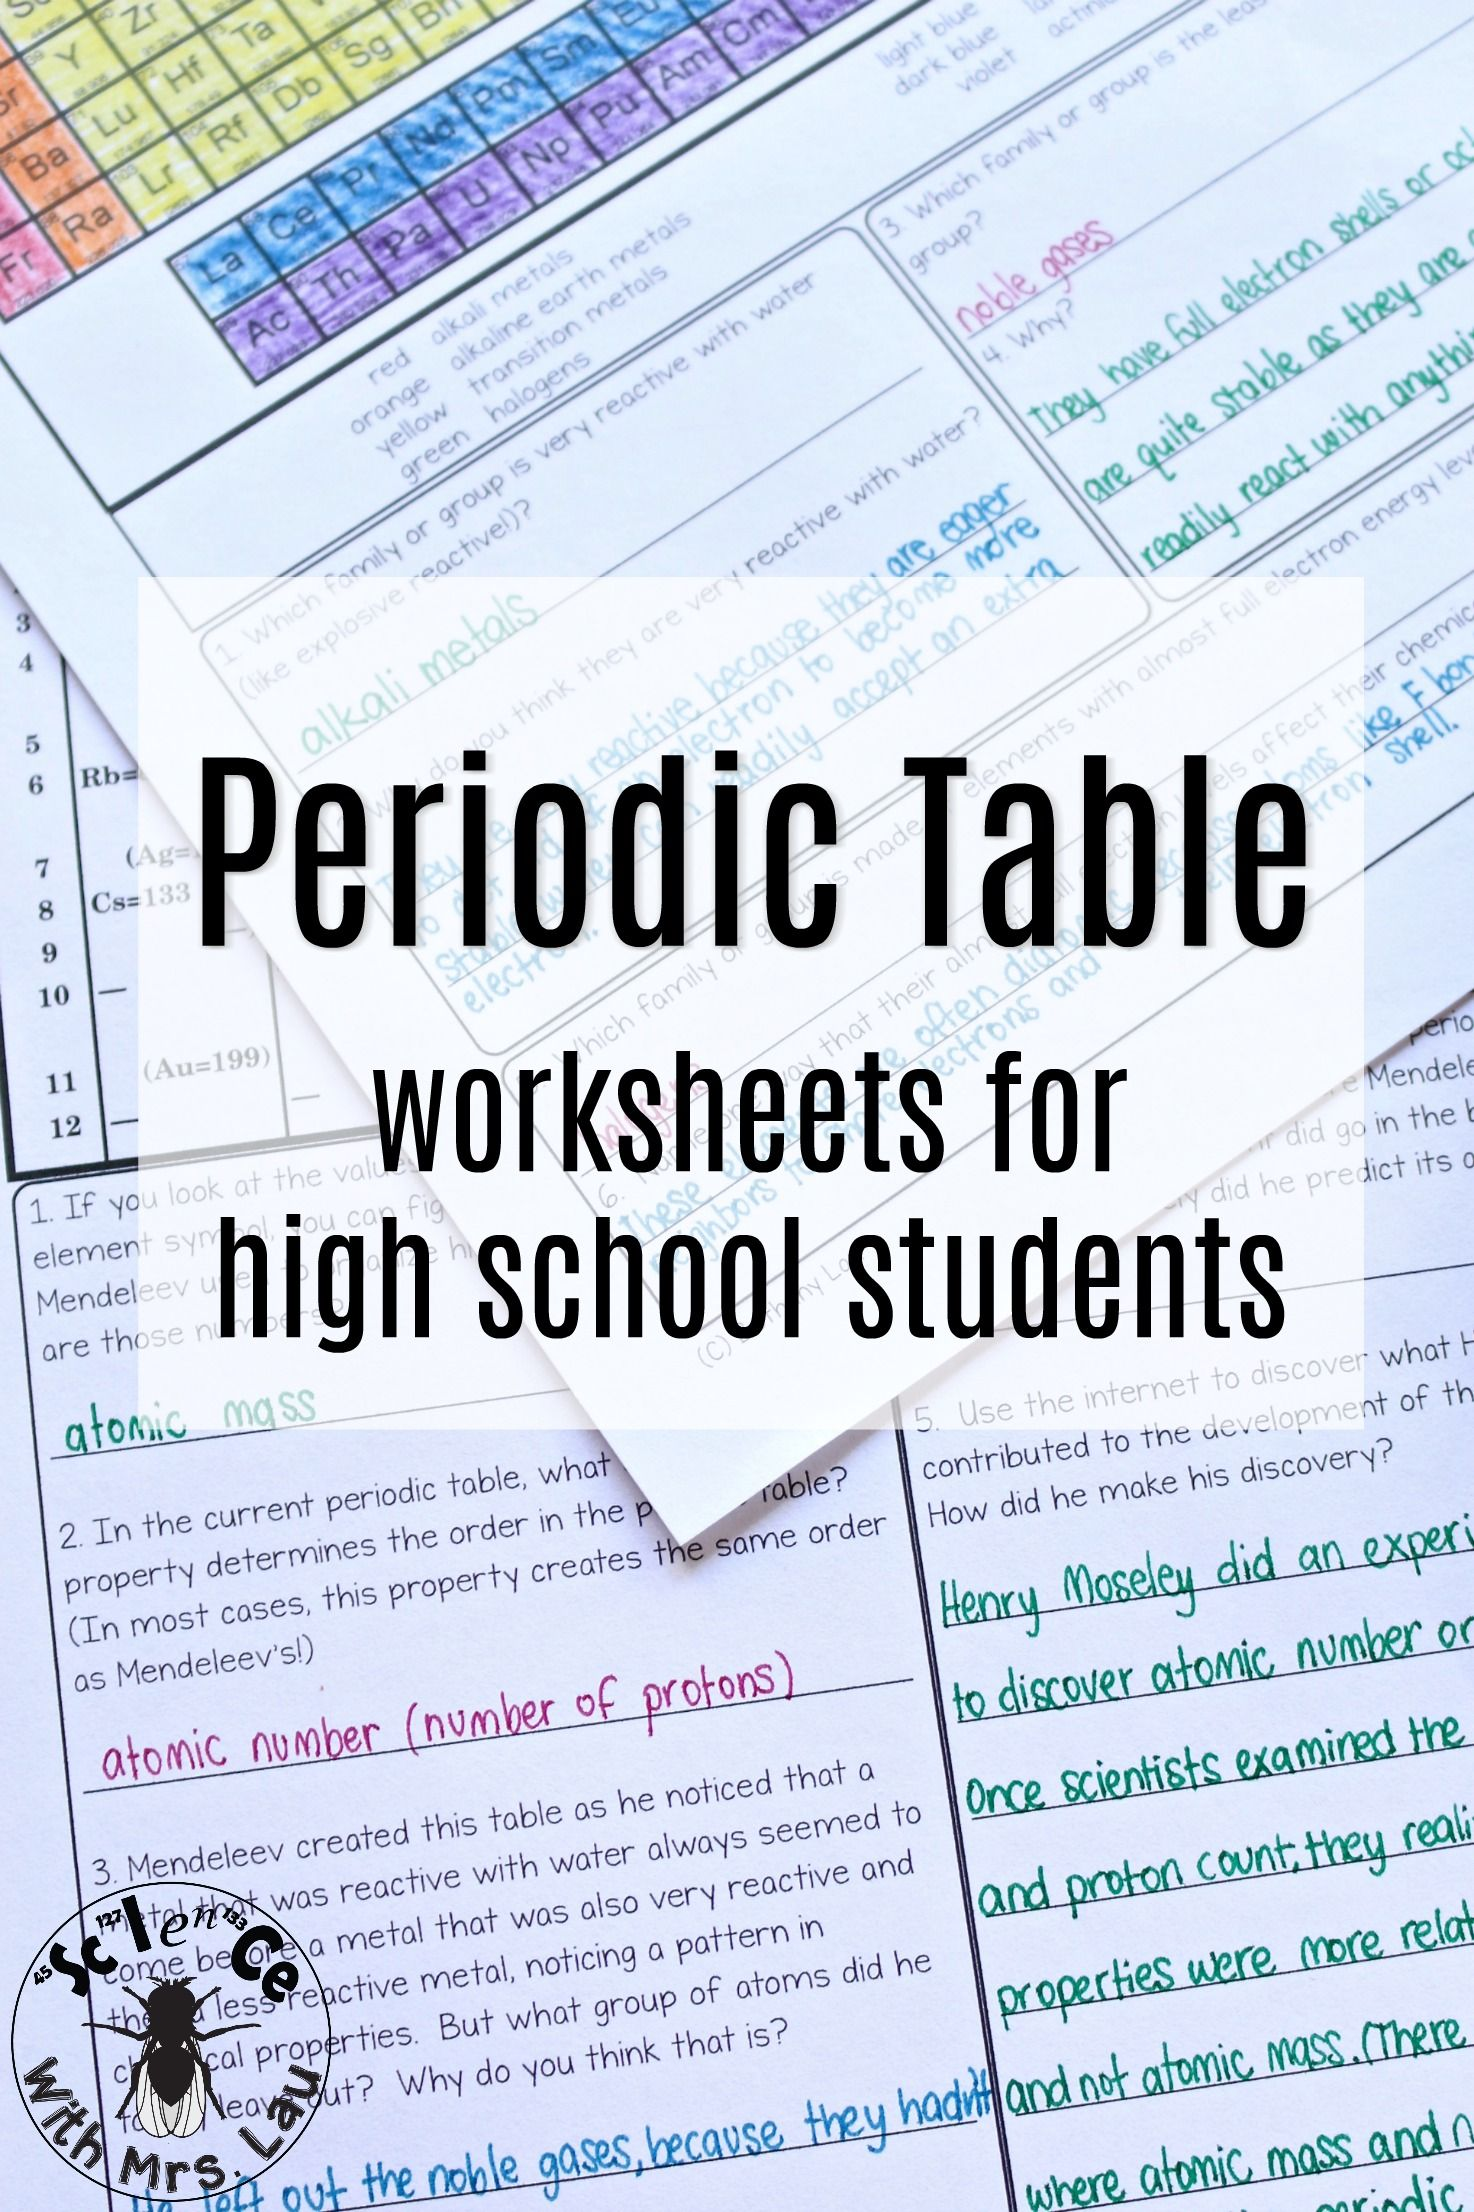 Periodic table trends chemistry homework pages ionic radius a whole set of periodic table trends worksheets covering everything from ionization energy electronegativity atomic radius ionic radius reactivity urtaz Image collections